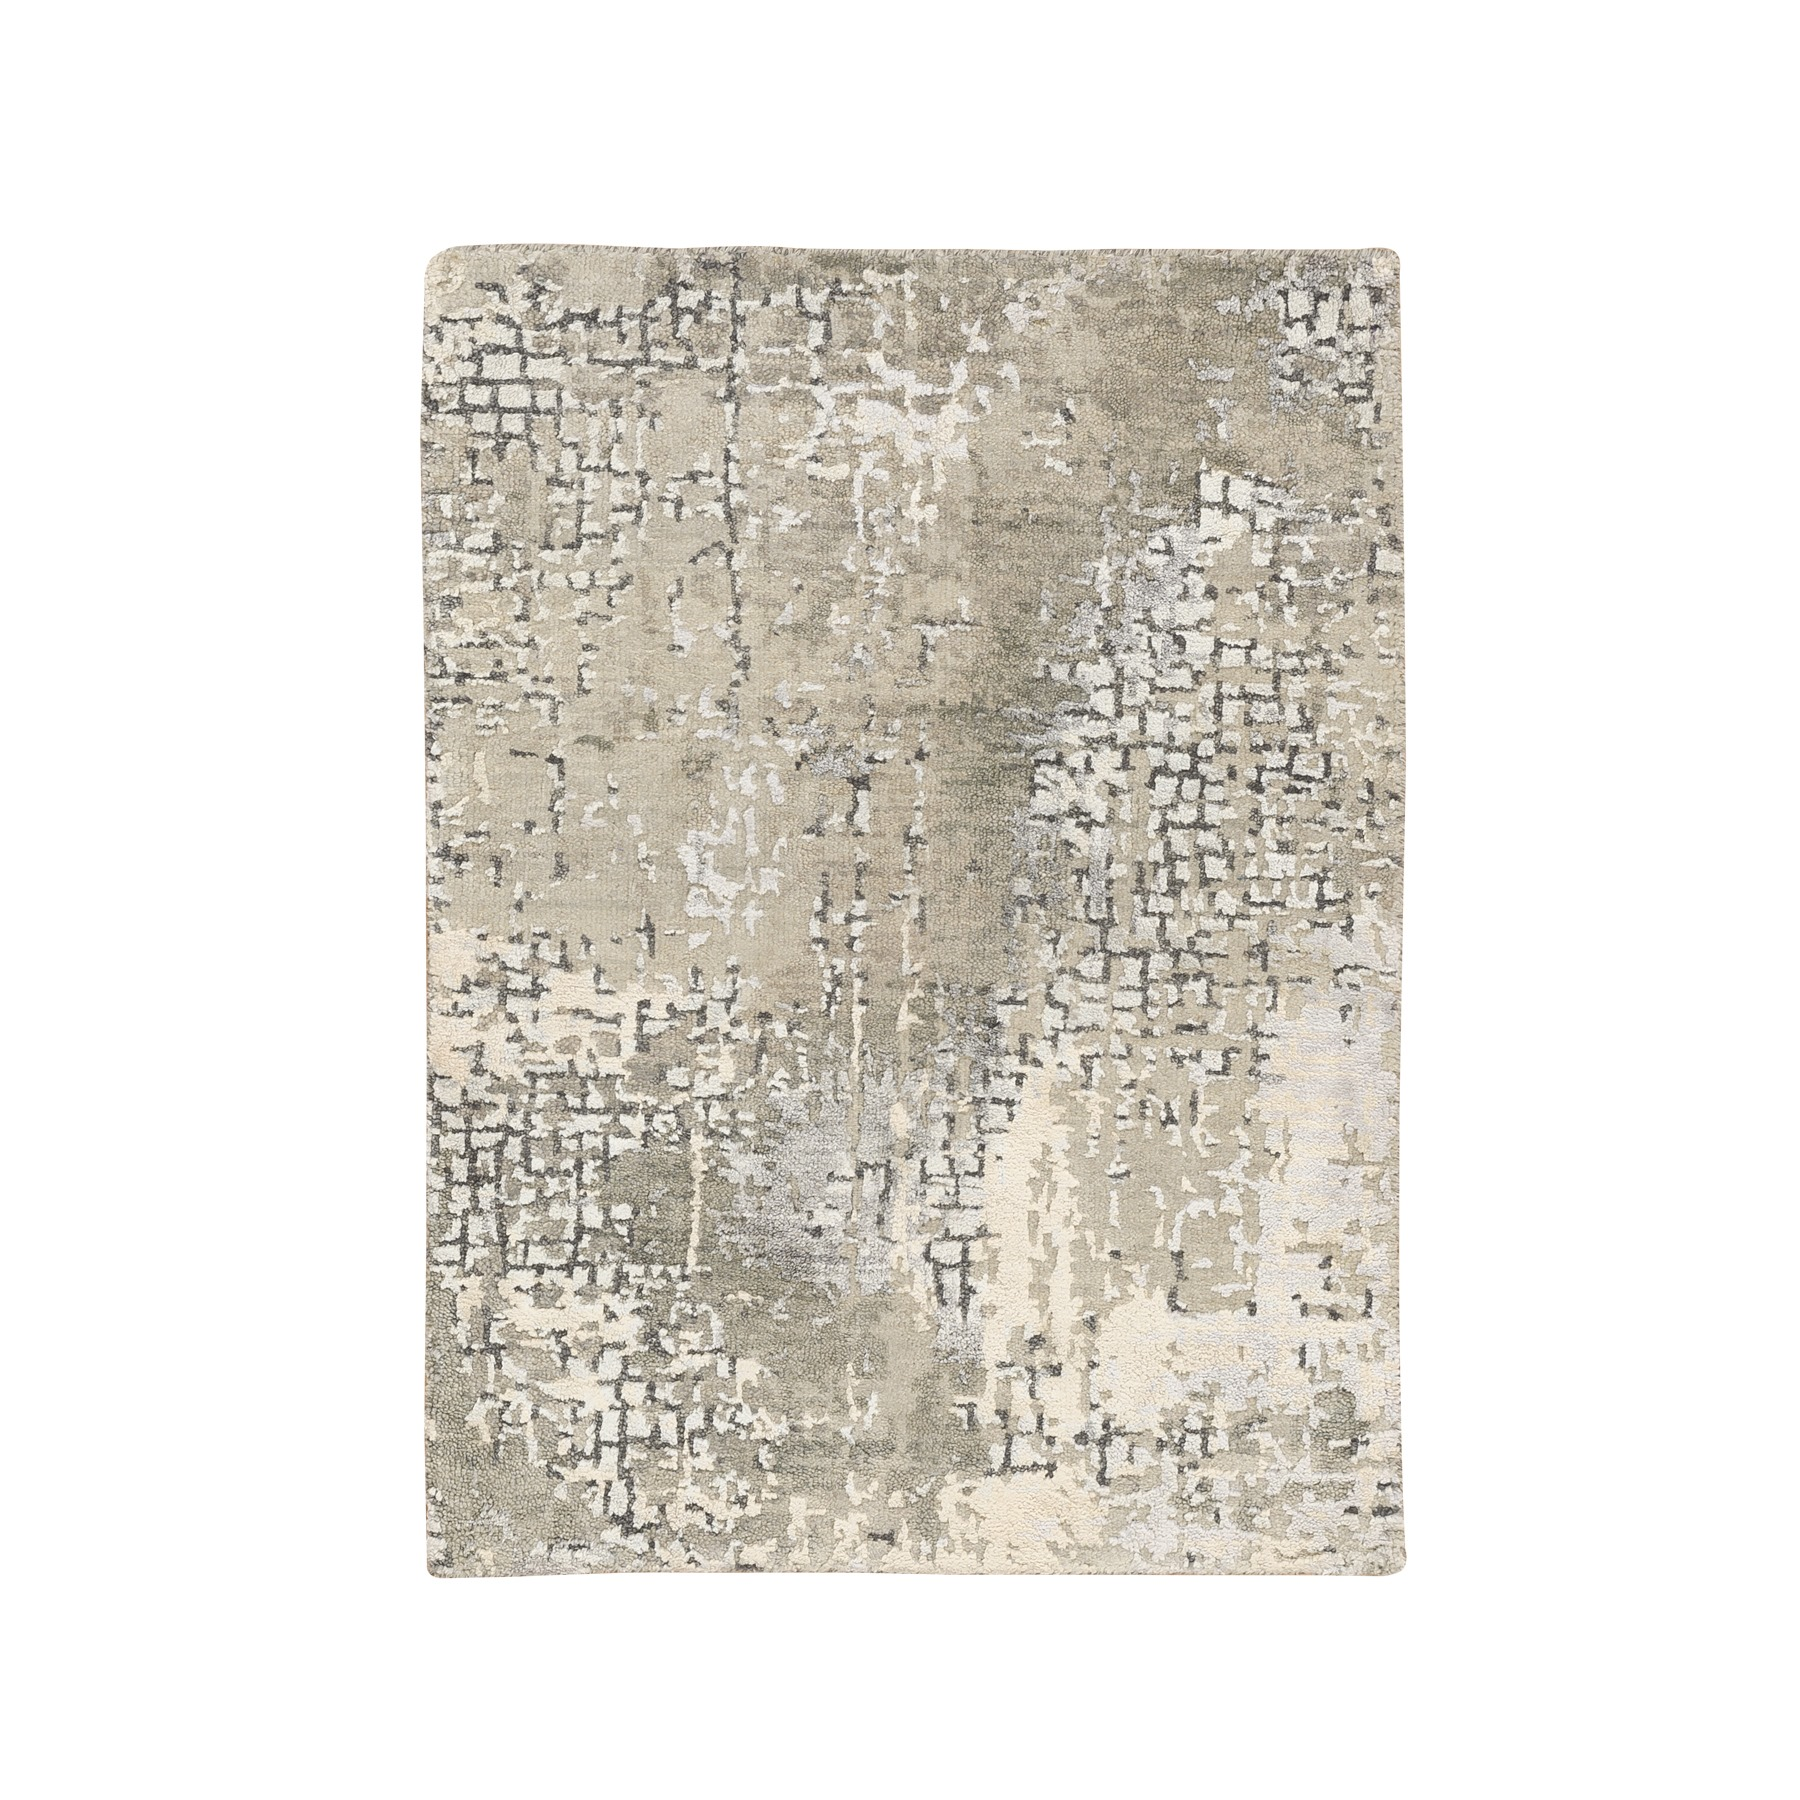 "2'x2'10"" Taupe Wool and Silk Abstract with Mosaic Design Hand Knotted Mat Oriental Rug"